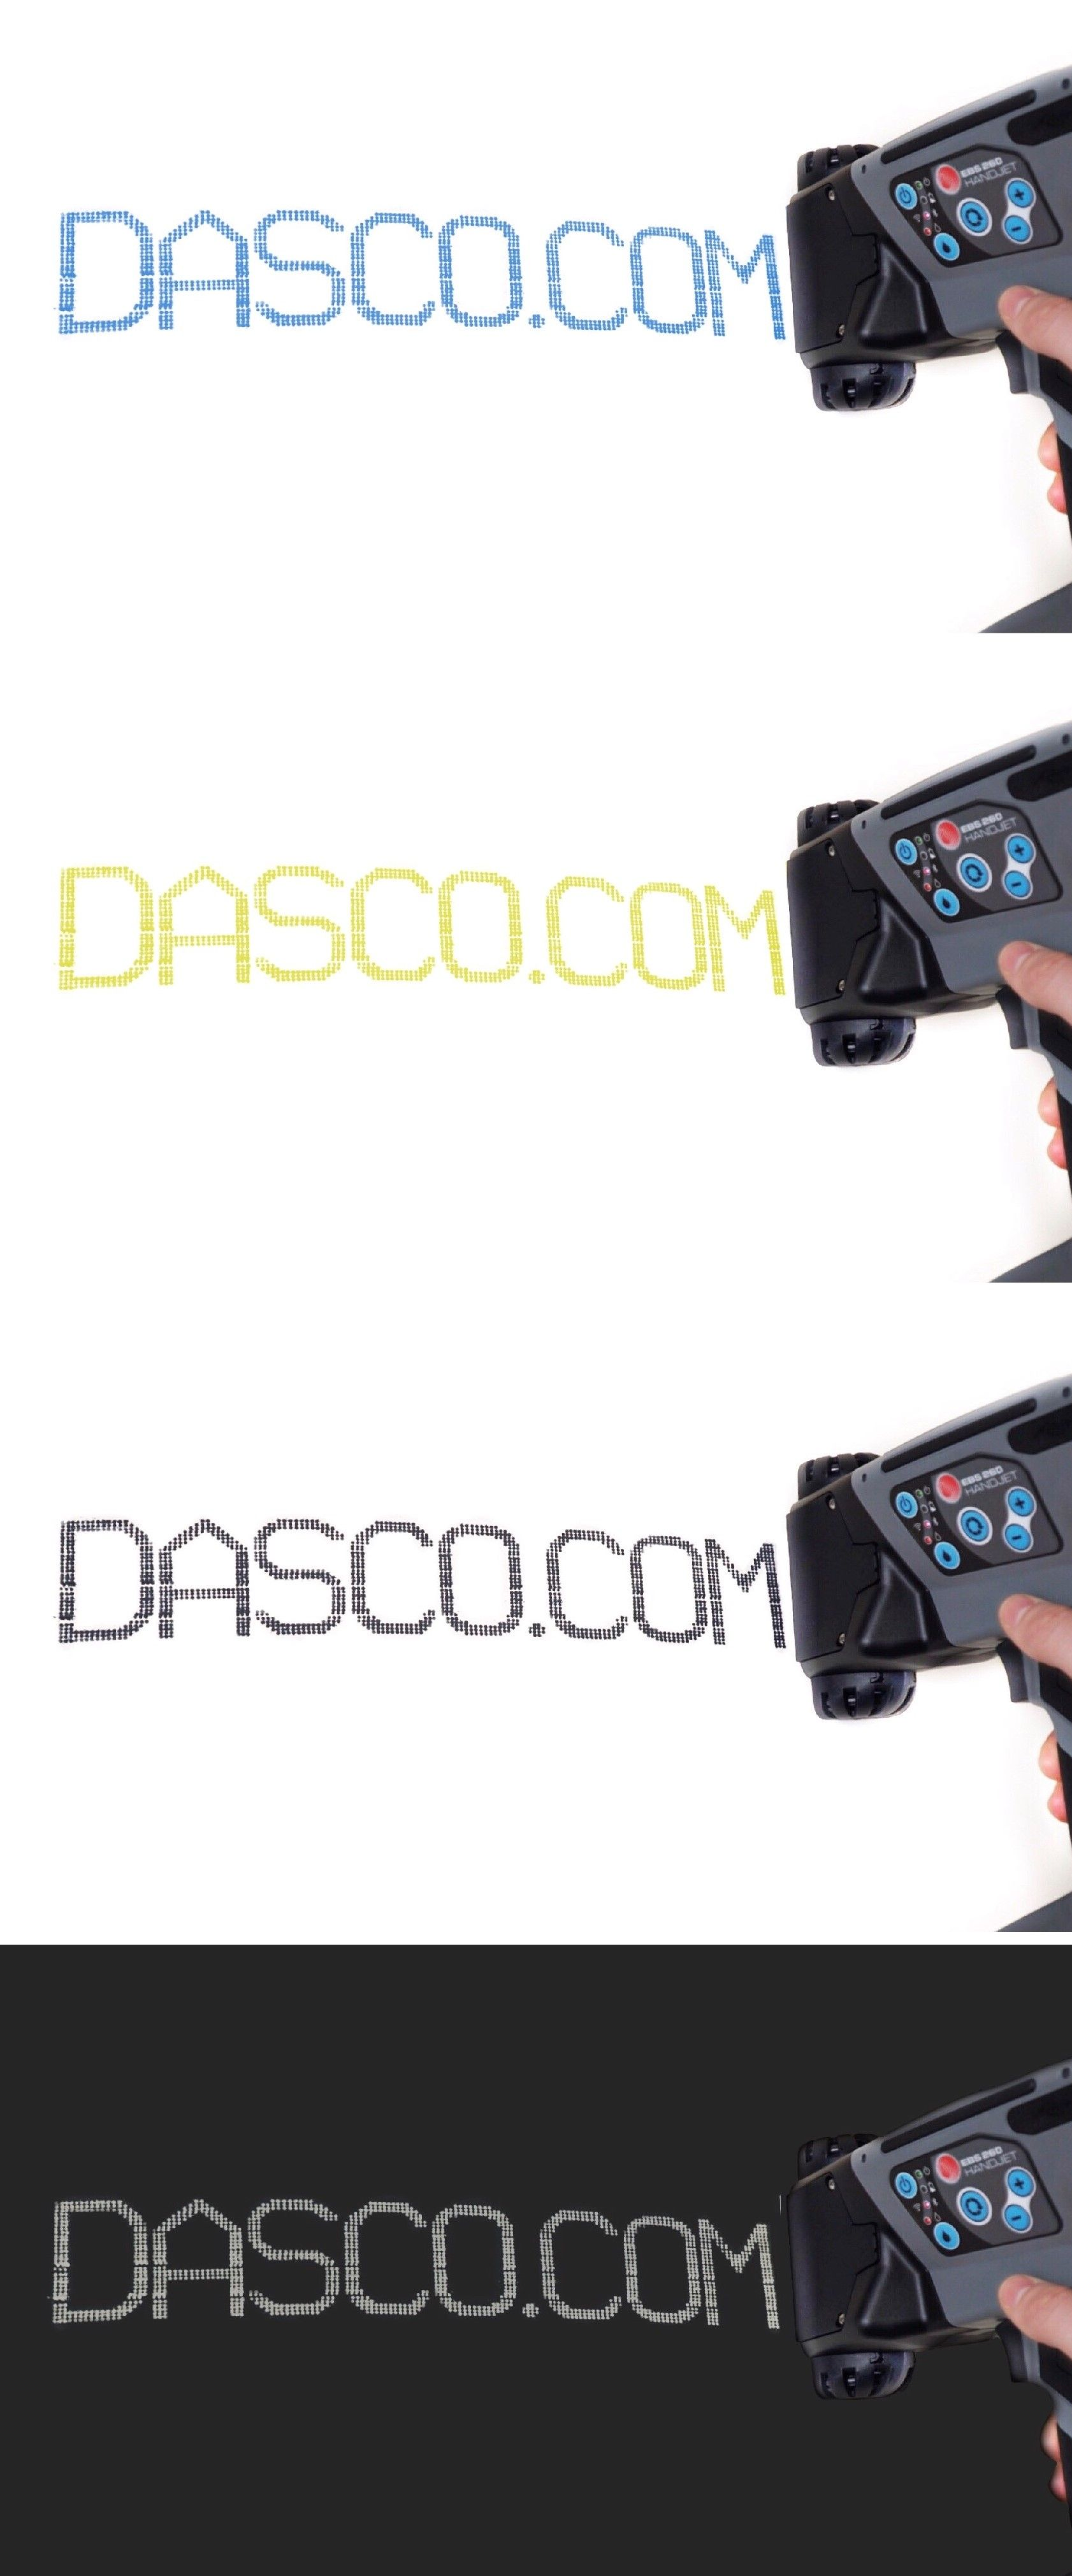 Pin by Dasco Label on Ink-Jet Technology in 2019 | Ink, Printer, Jet